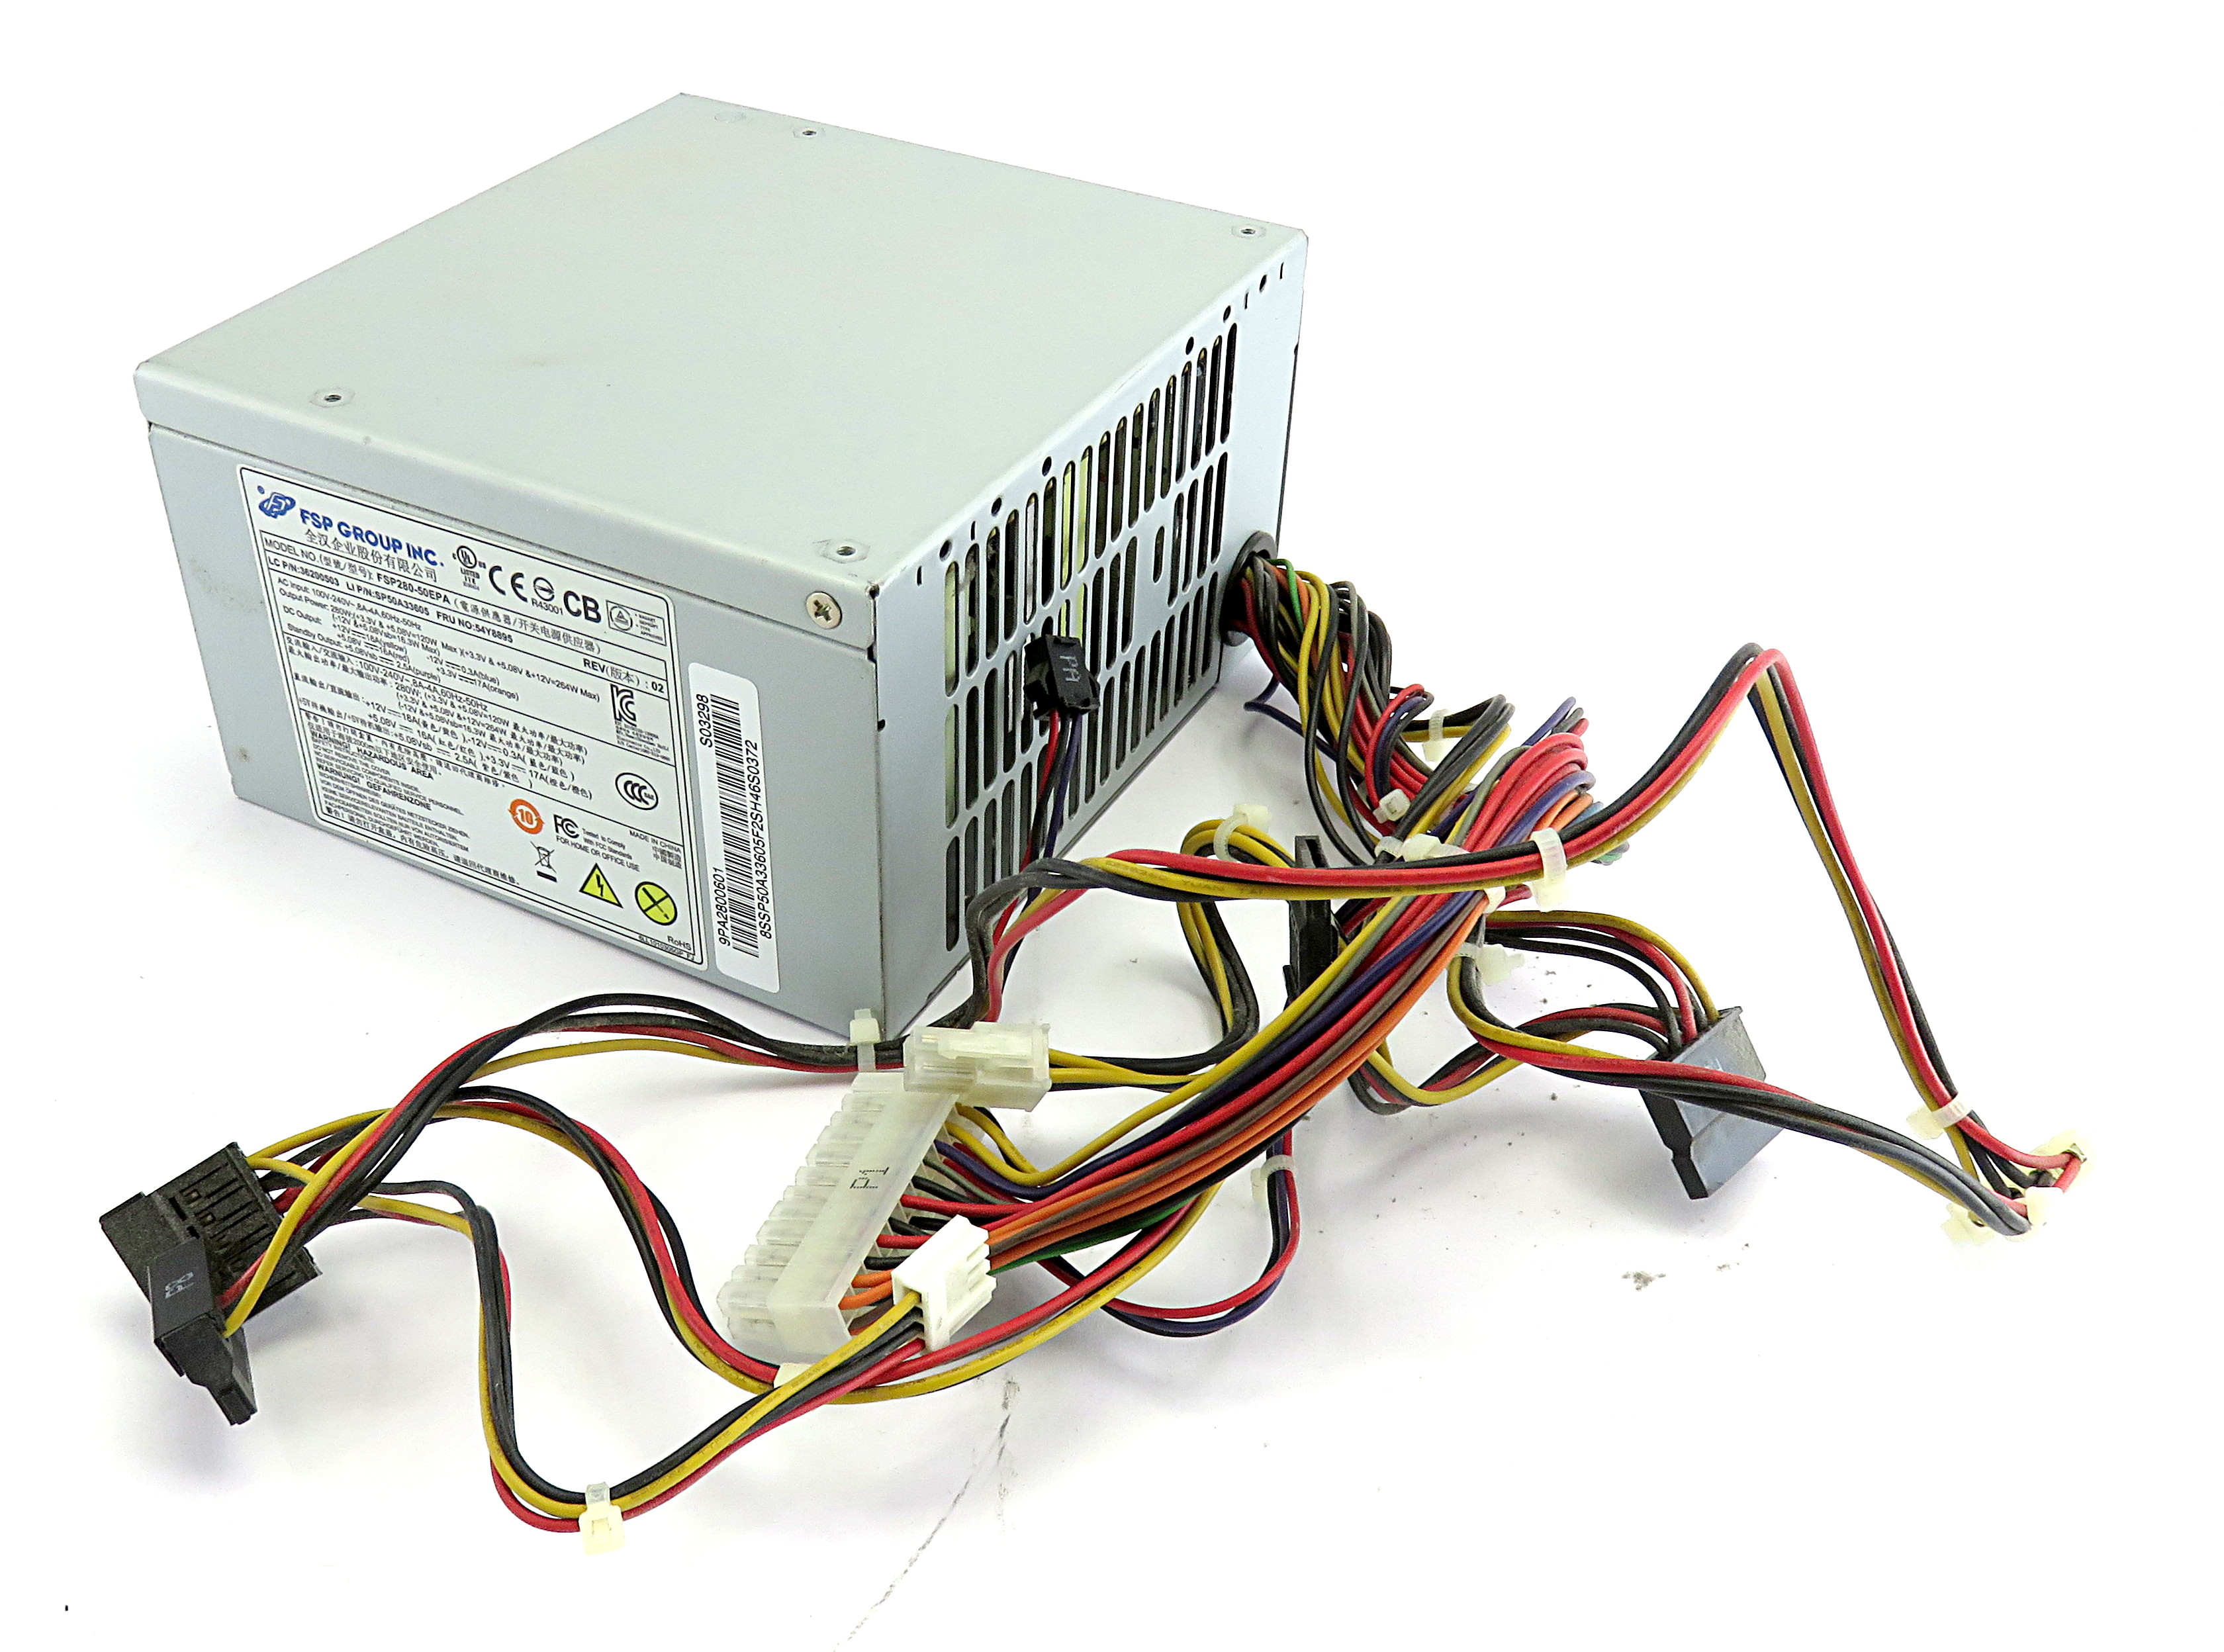 Lenovo 54Y8895 FSP280-50EPA 24-Pin ATX Power Supply f/ Erazer X310 PC